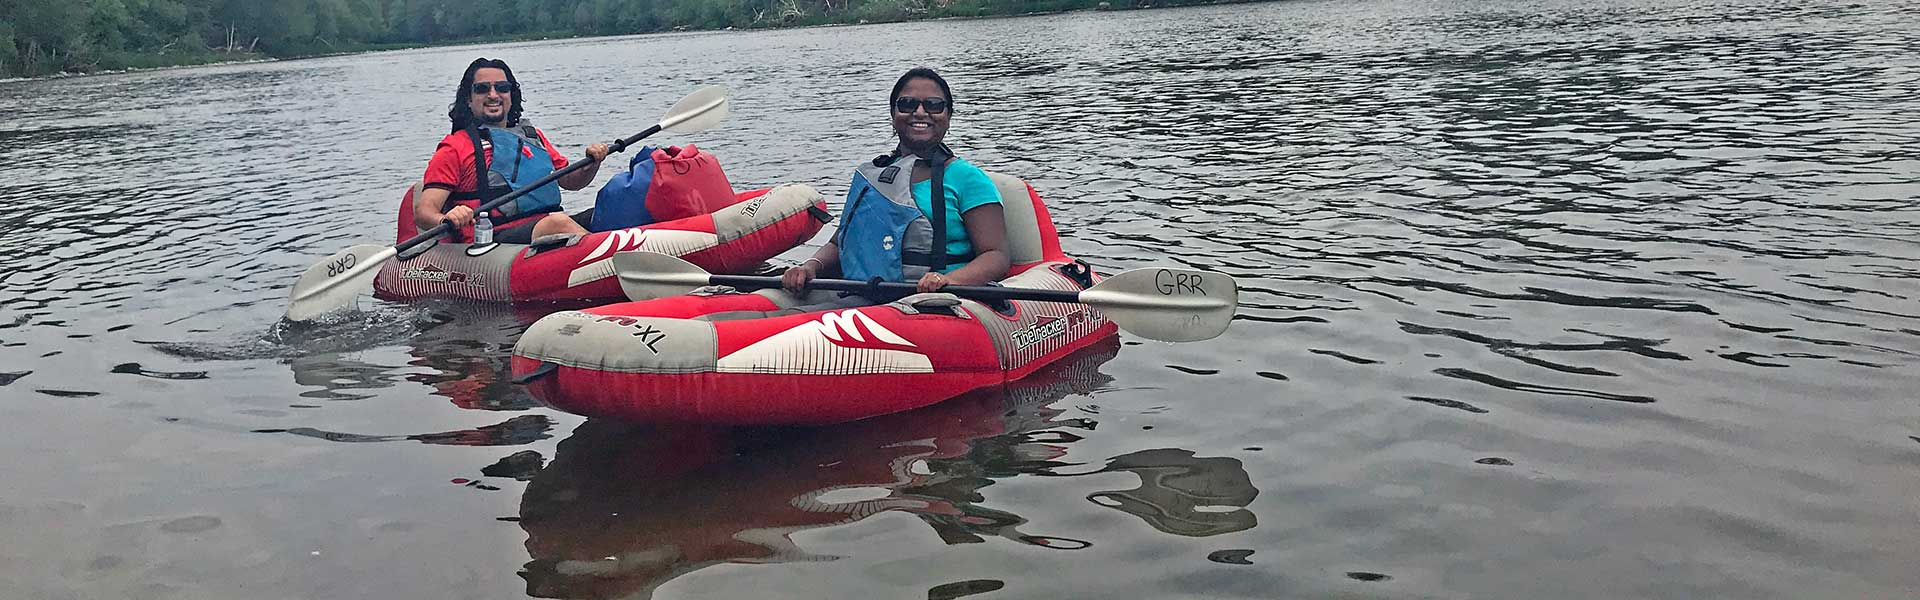 Turbo Tube Rentals on the Grand River